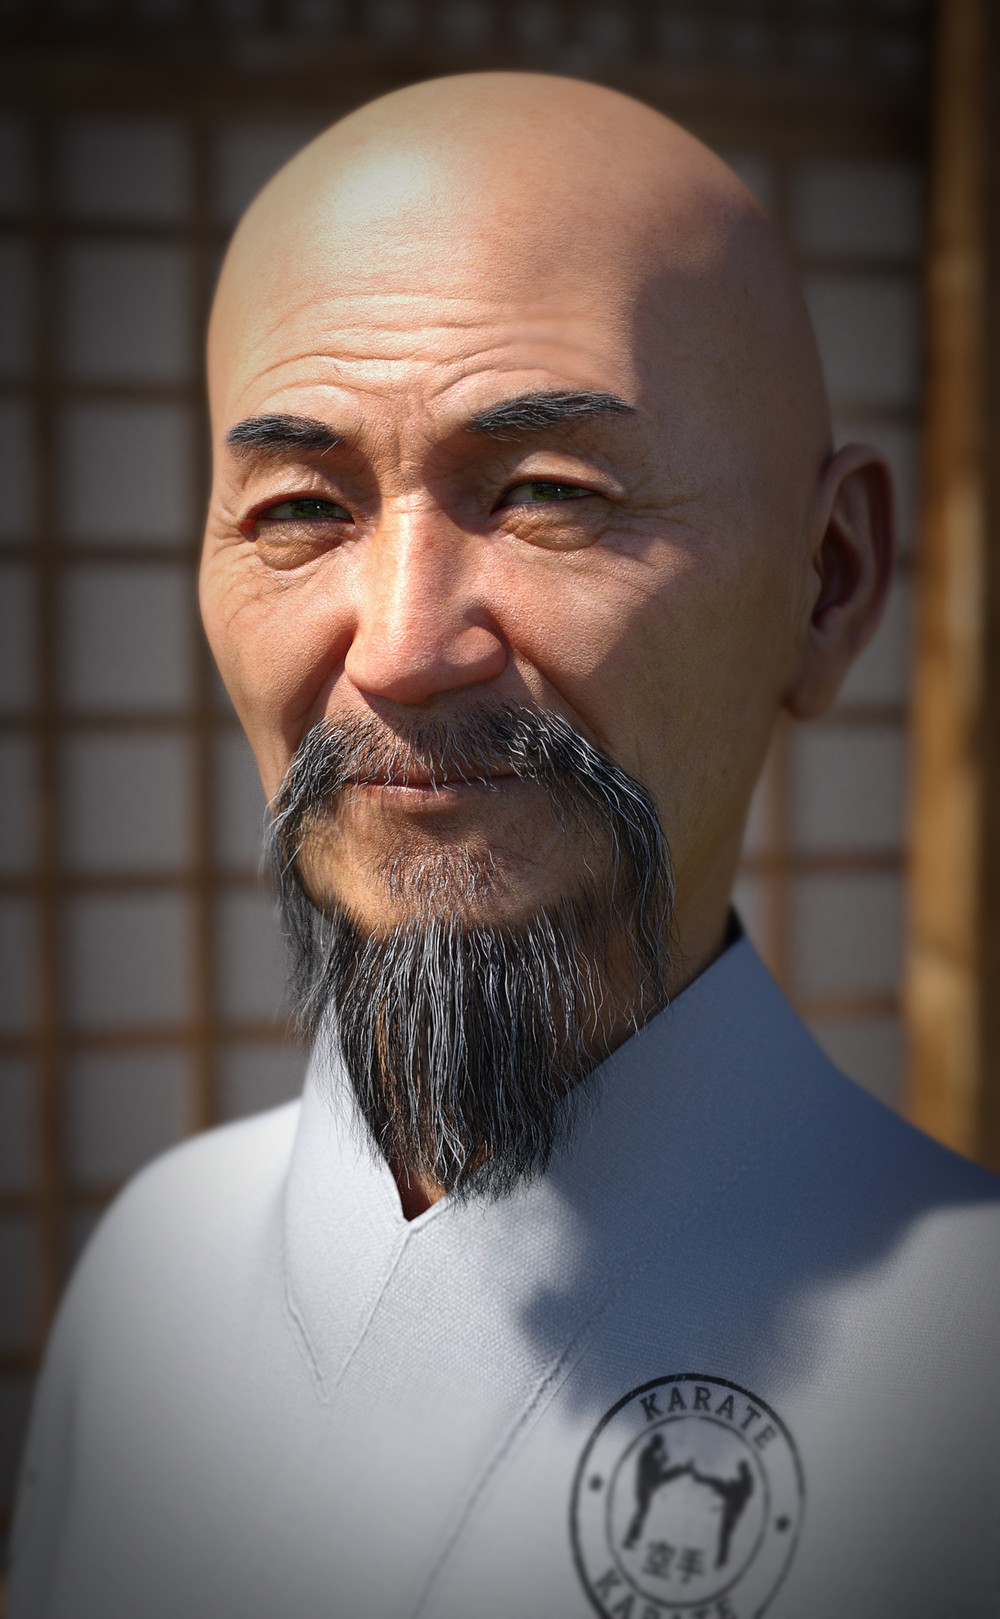 Daz3D Original featuring textures by Moonscape Graphics for Martial Arts outfit for Genesis 8. Image shows close up of an older Asian gentleman wearing Karate Gi.